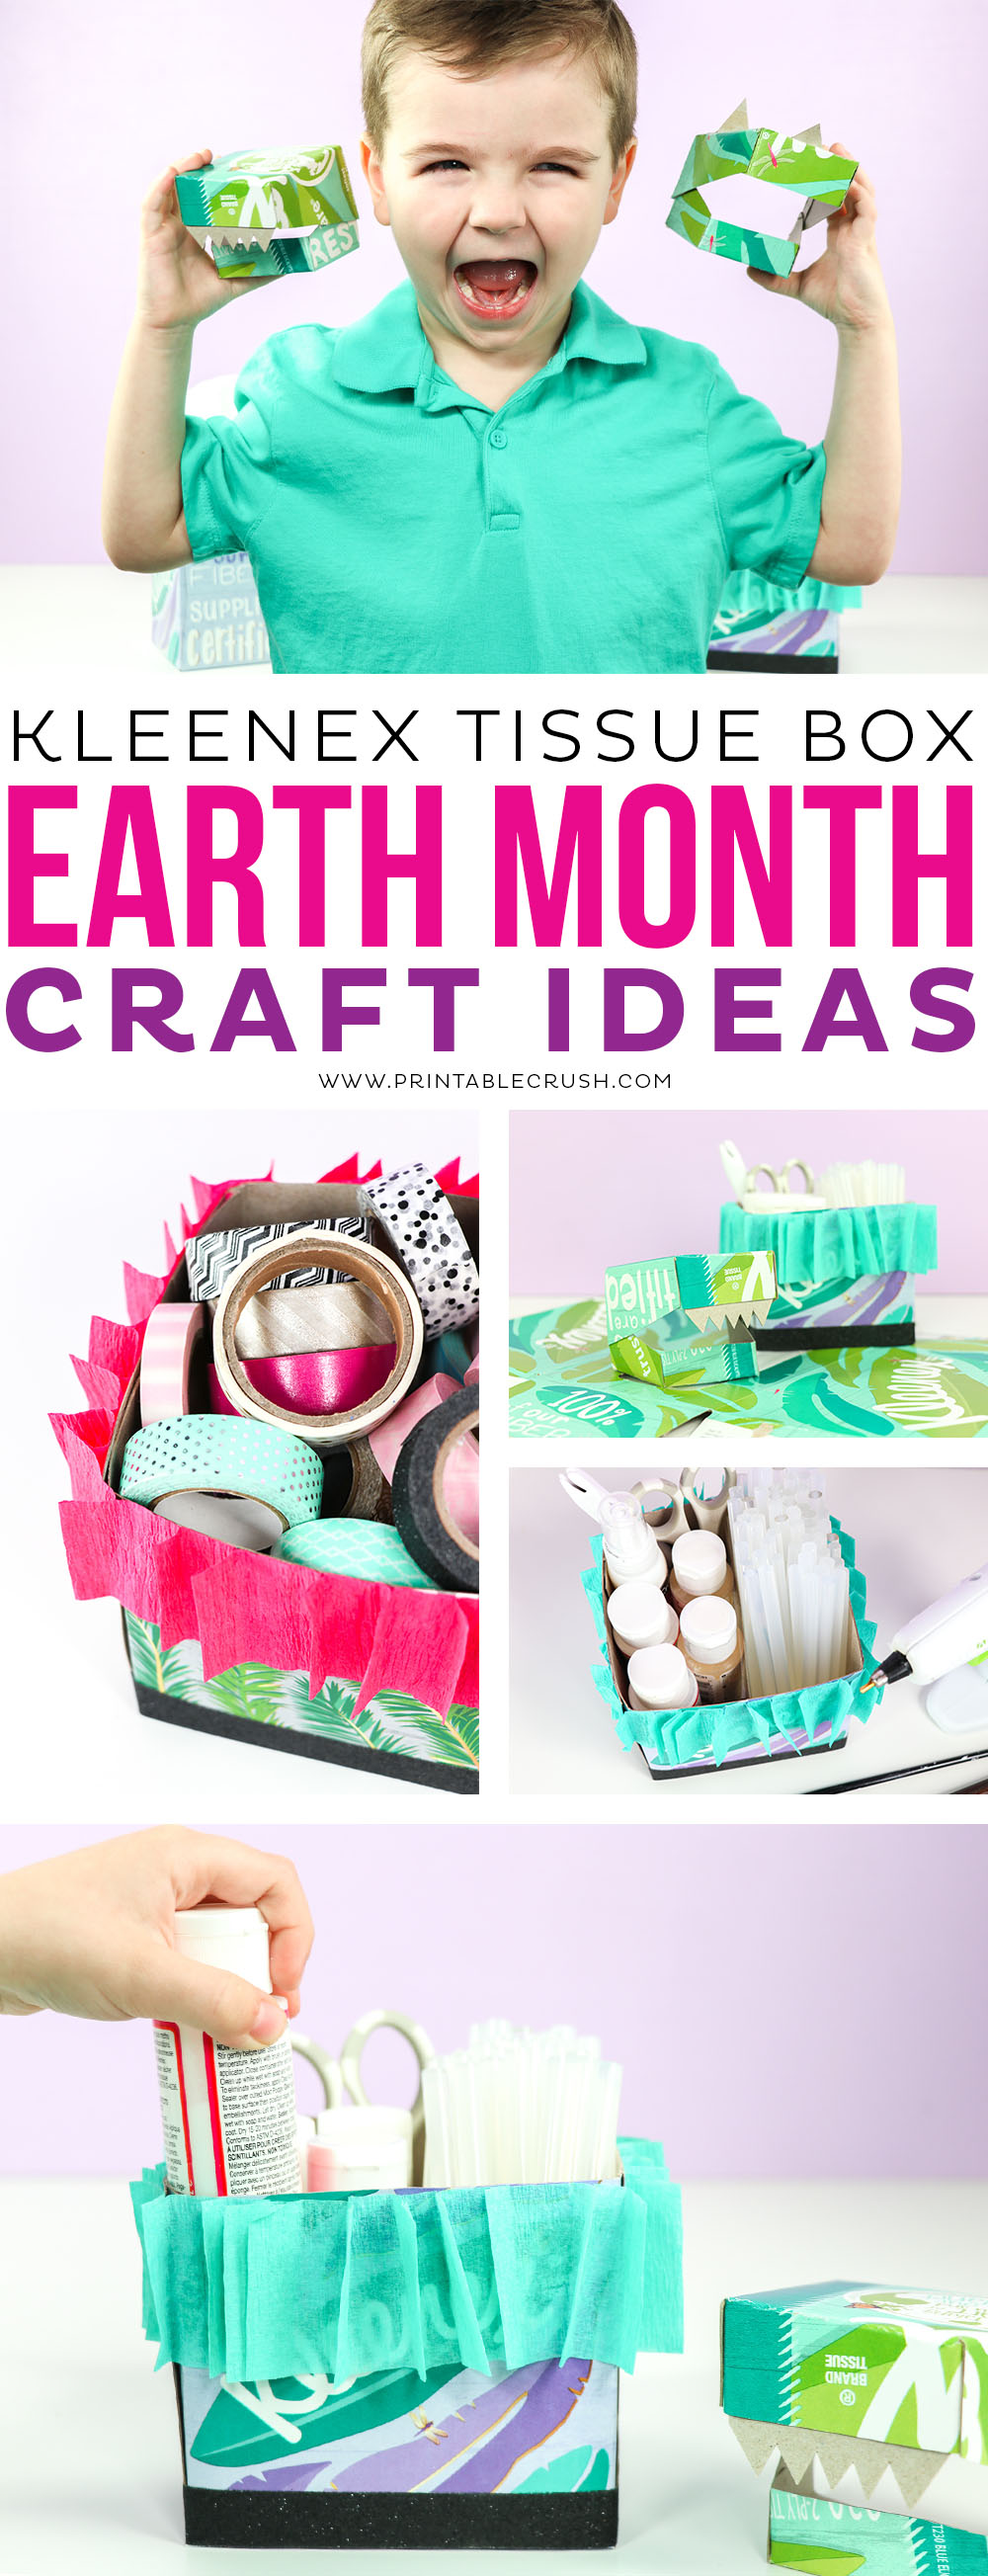 Kleenex Tissue Box Earth Month Craft Ideas For Kids Printable Crush